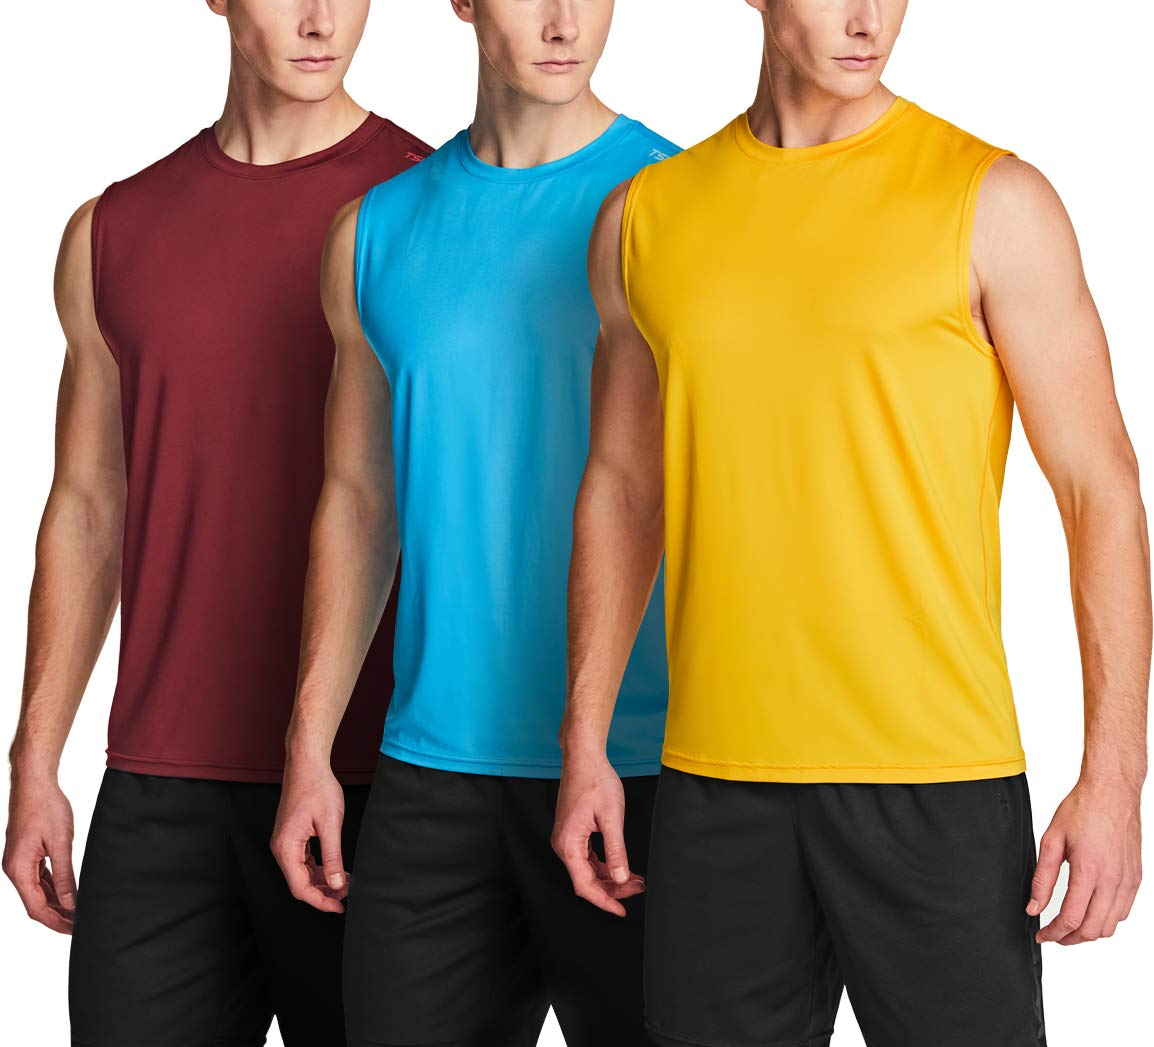 Performance Athletic Muscle Shirts TSLA 1 or 3 Pack Mens Sleeveless Running Tank Top Dry Fit Workout Gym Tank Tops